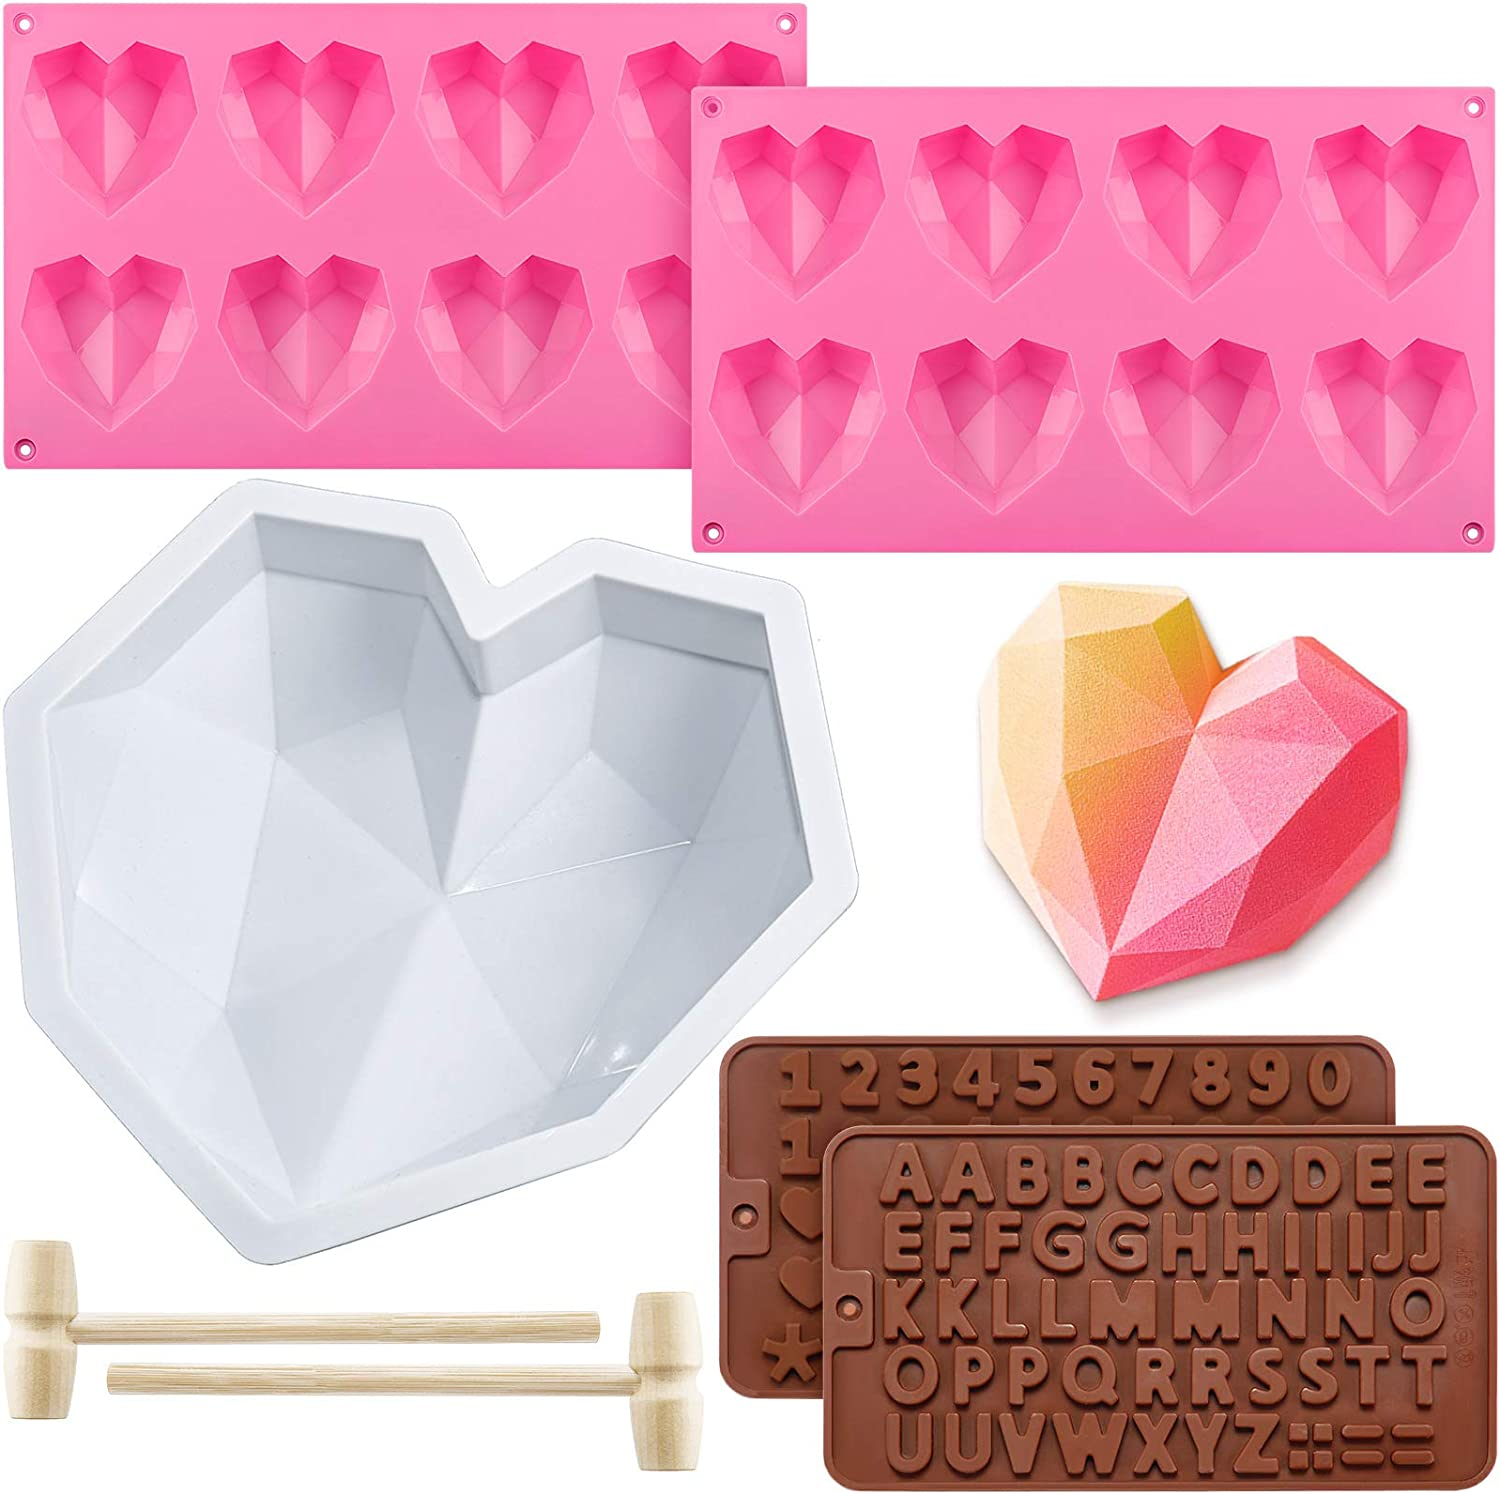 8.7 Inch Diamond Heart Mousse Silicone Cake Mold Tray, 2 Pieces 8 Cavities Heart Diamond Shaped Cake Mold Tray, 2 Pieces Chocolate Mold Letter Number Shaped Mold and 2 Pieces Wooden Hammer for Baking